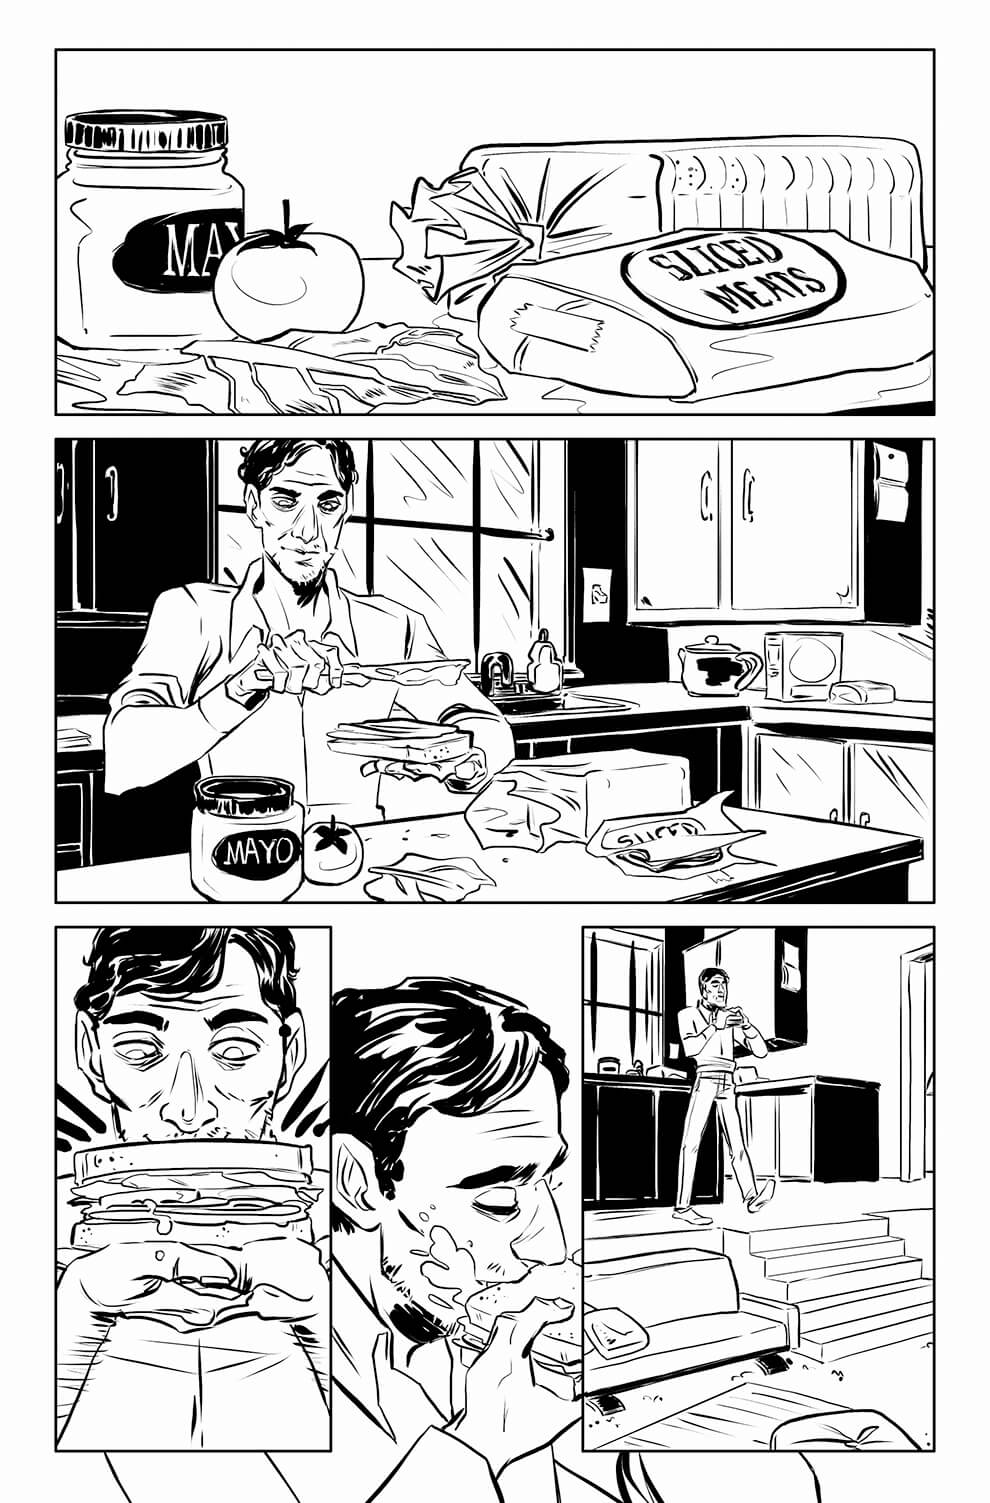 A Slip of the Tongue, page 1, by Sam Costello and Jen Hickman